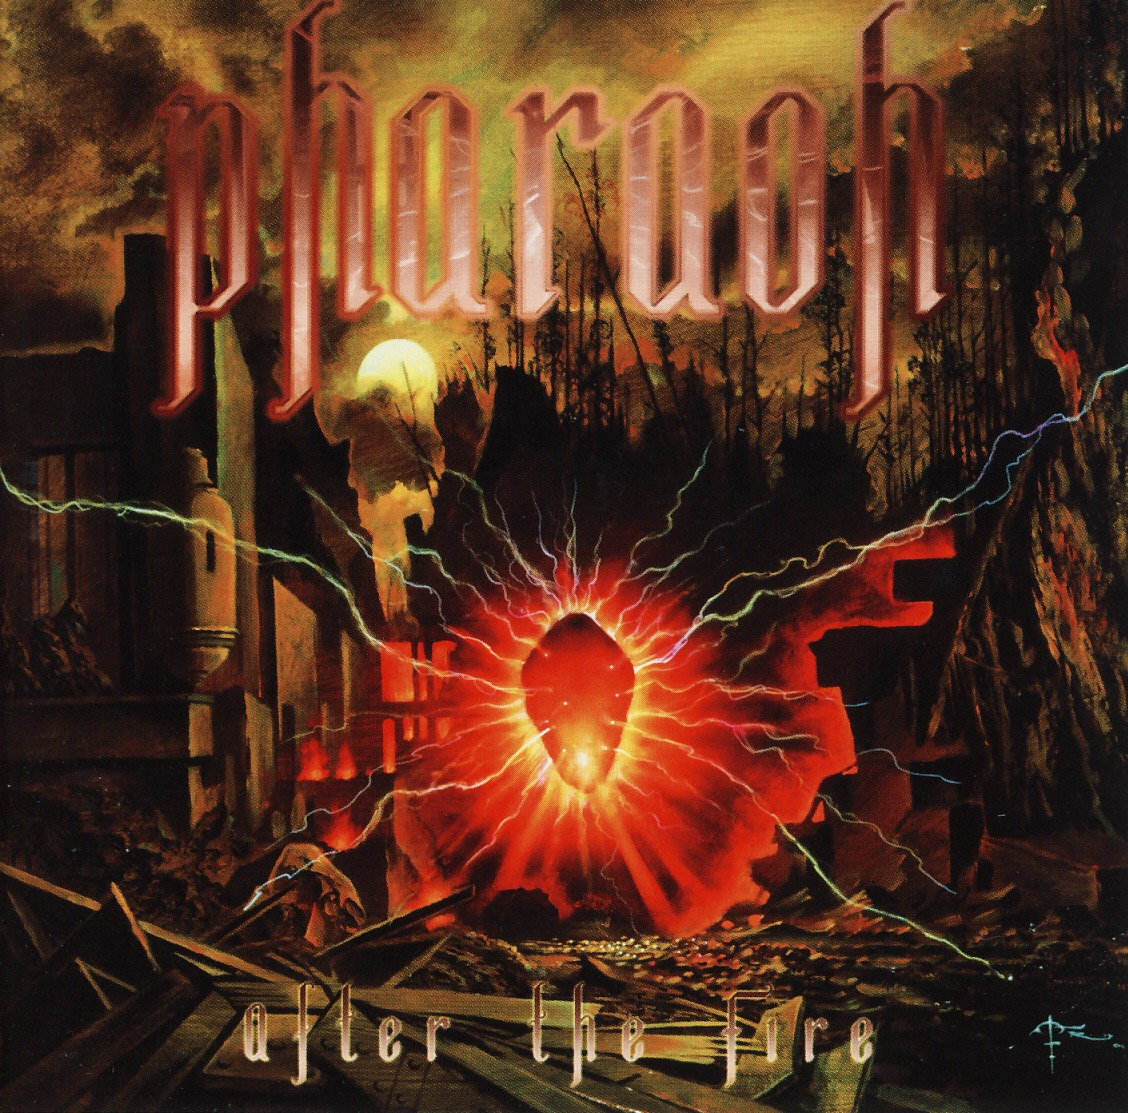 PHARAOH (US) / After The Fire